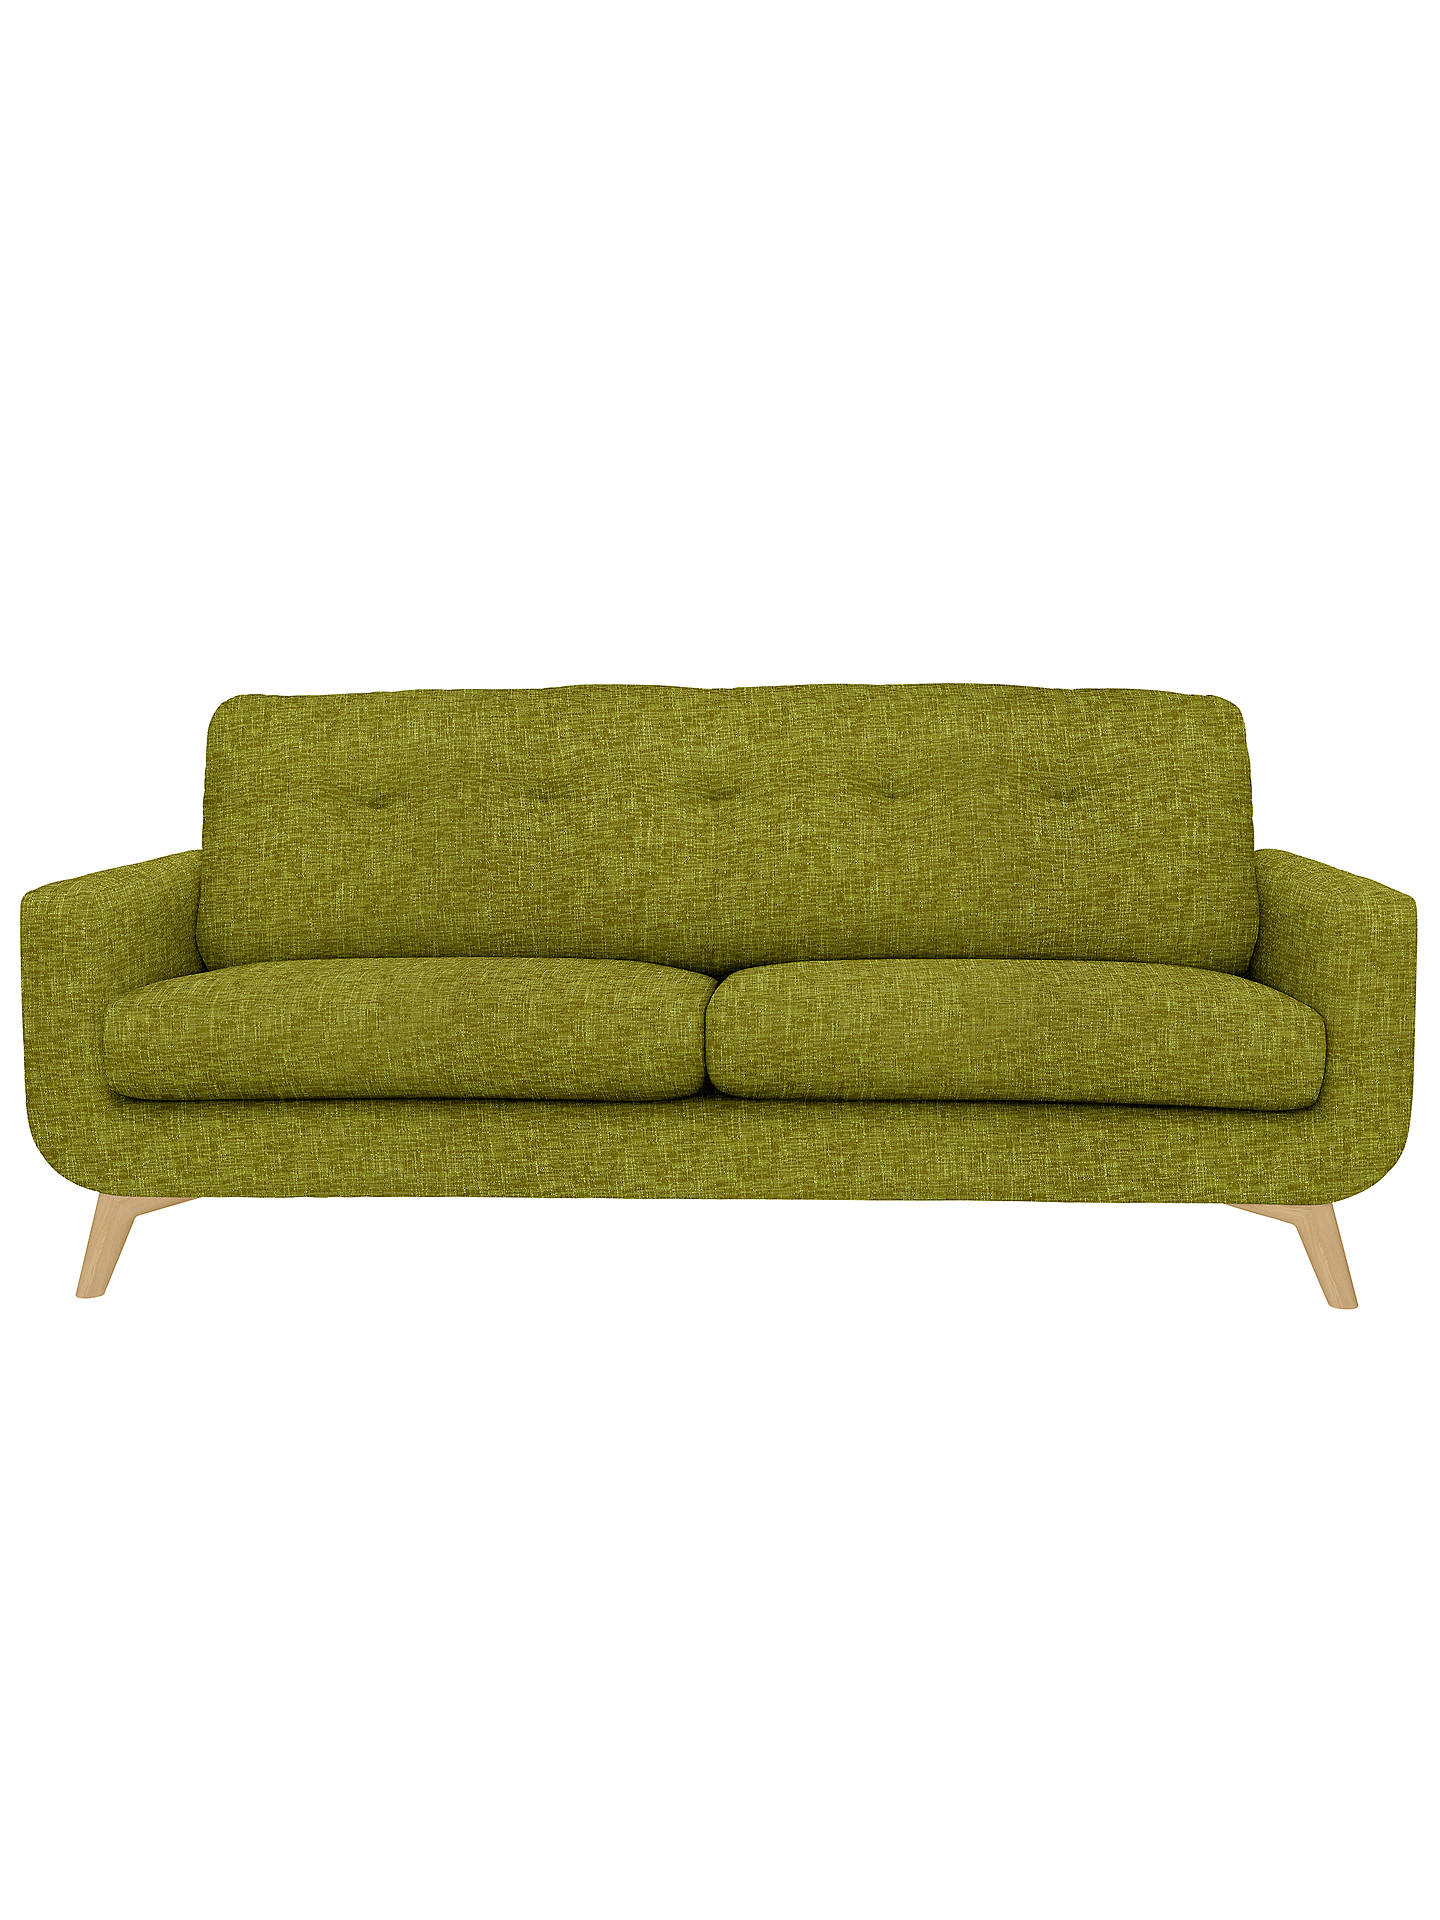 Buy John Lewis Barbican Large Sofa with Light Legs, Henley Olive Online at johnlewis.com